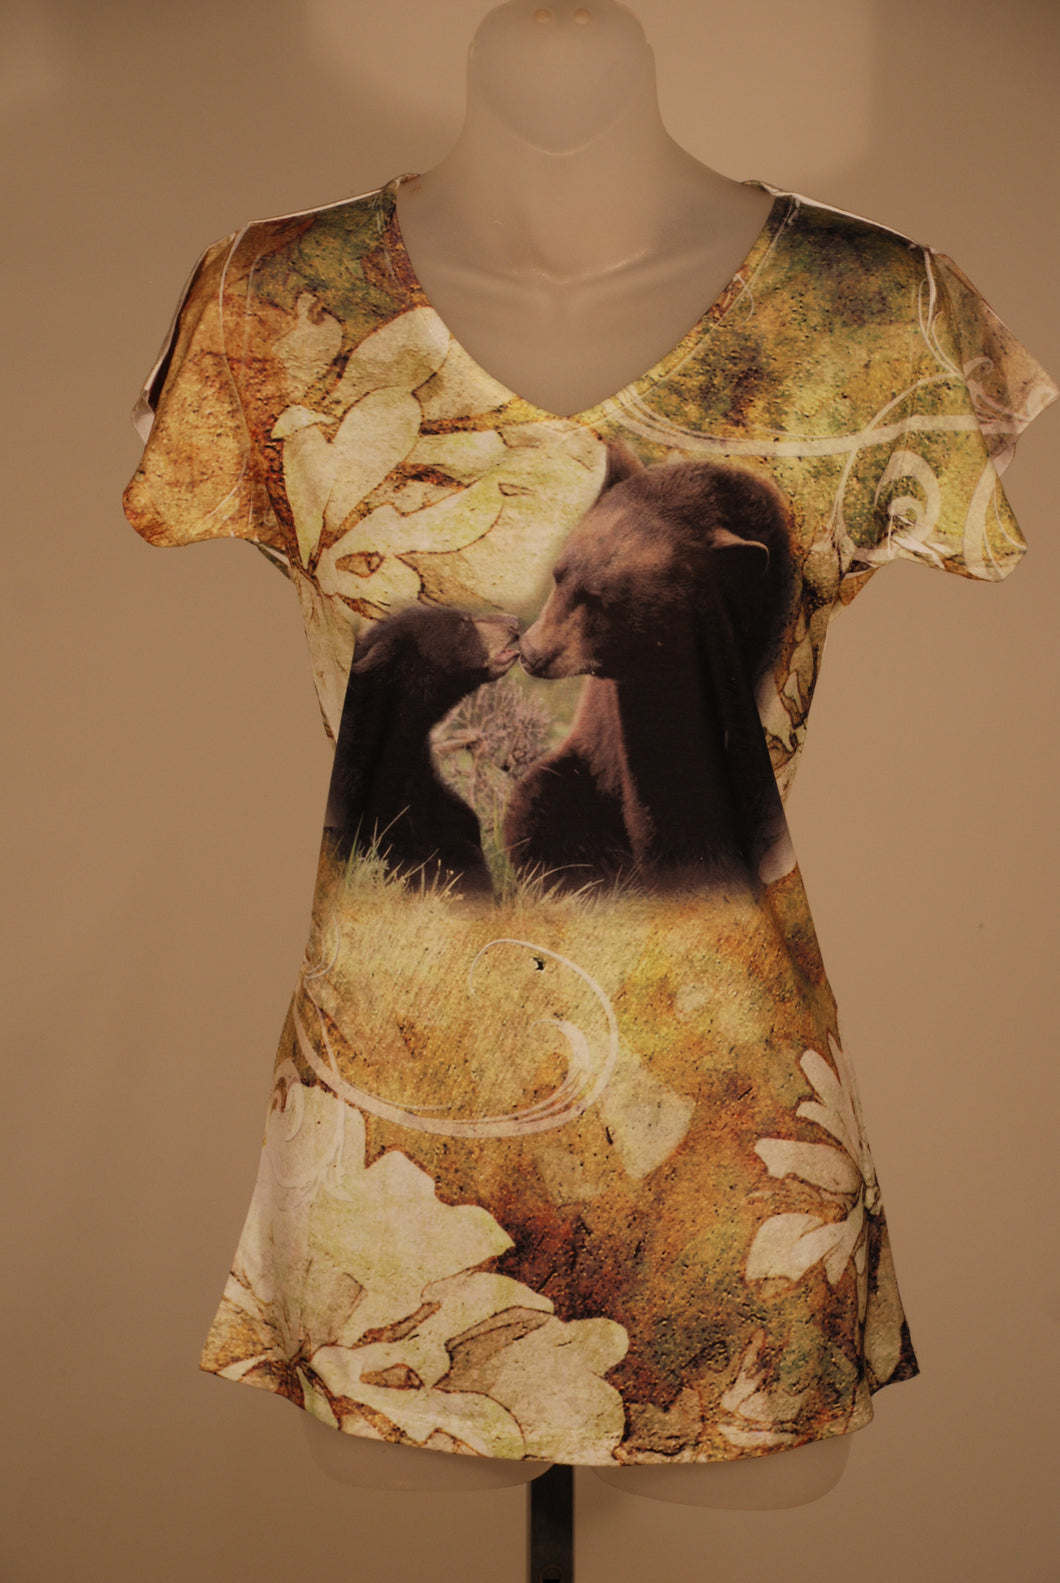 Women's Bear love Sunshirt - gold and green fashion t-shirt with bear nature art